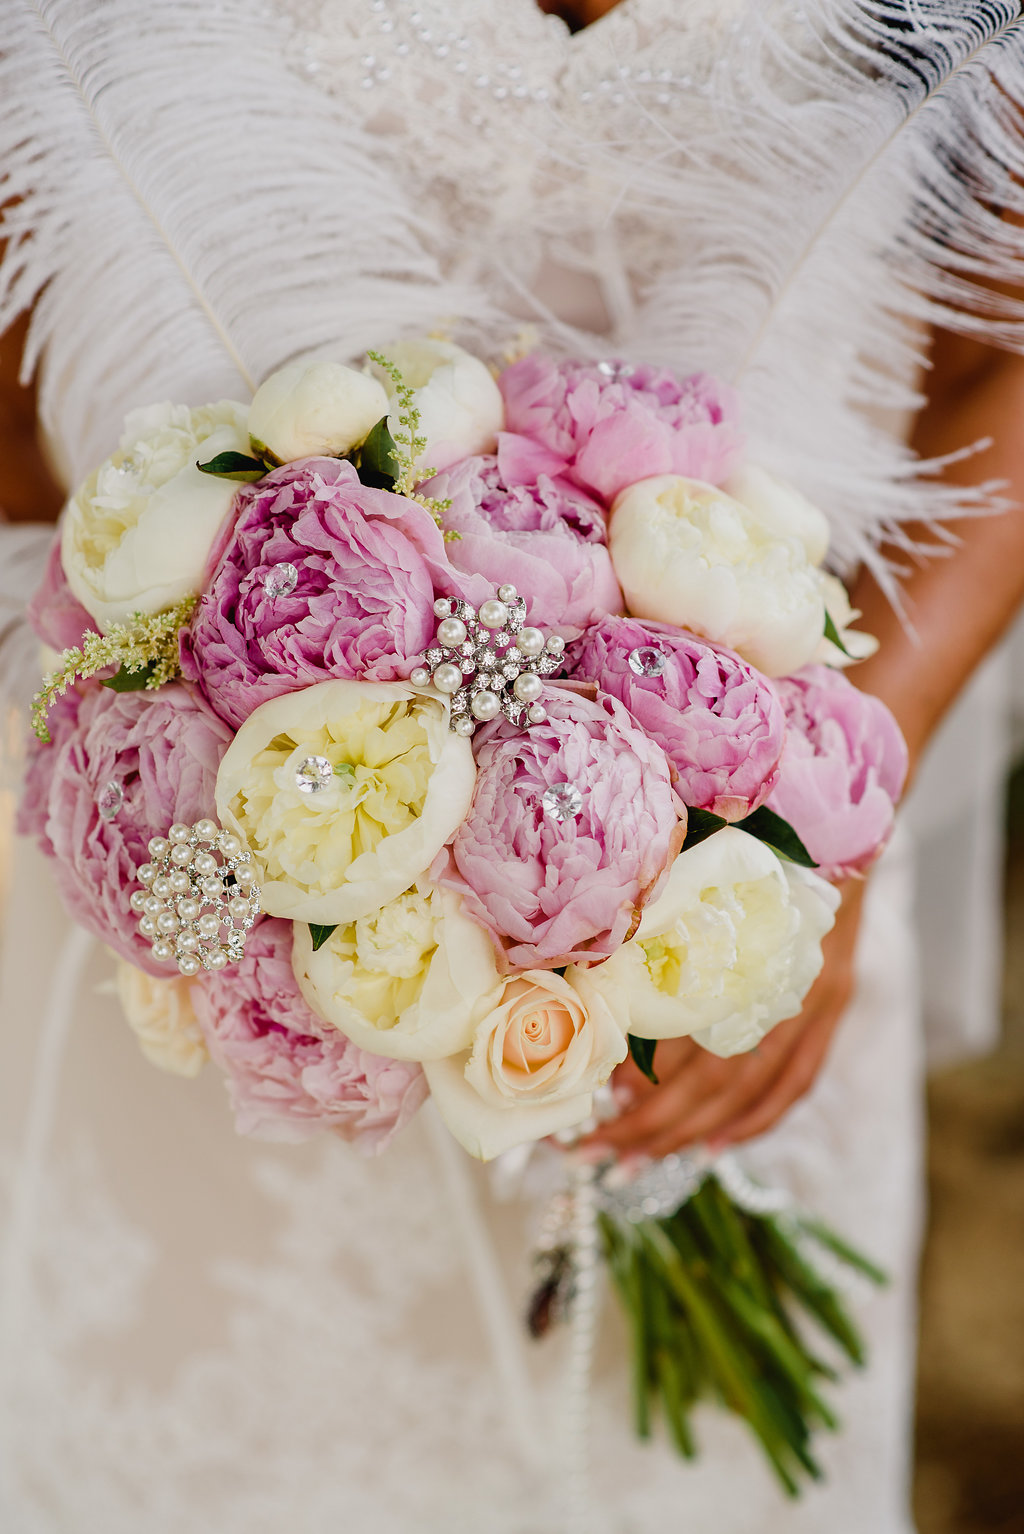 Ibiza Flower Shop | Ibiza Wedding Shop - Perfect Weddings in Ibiza